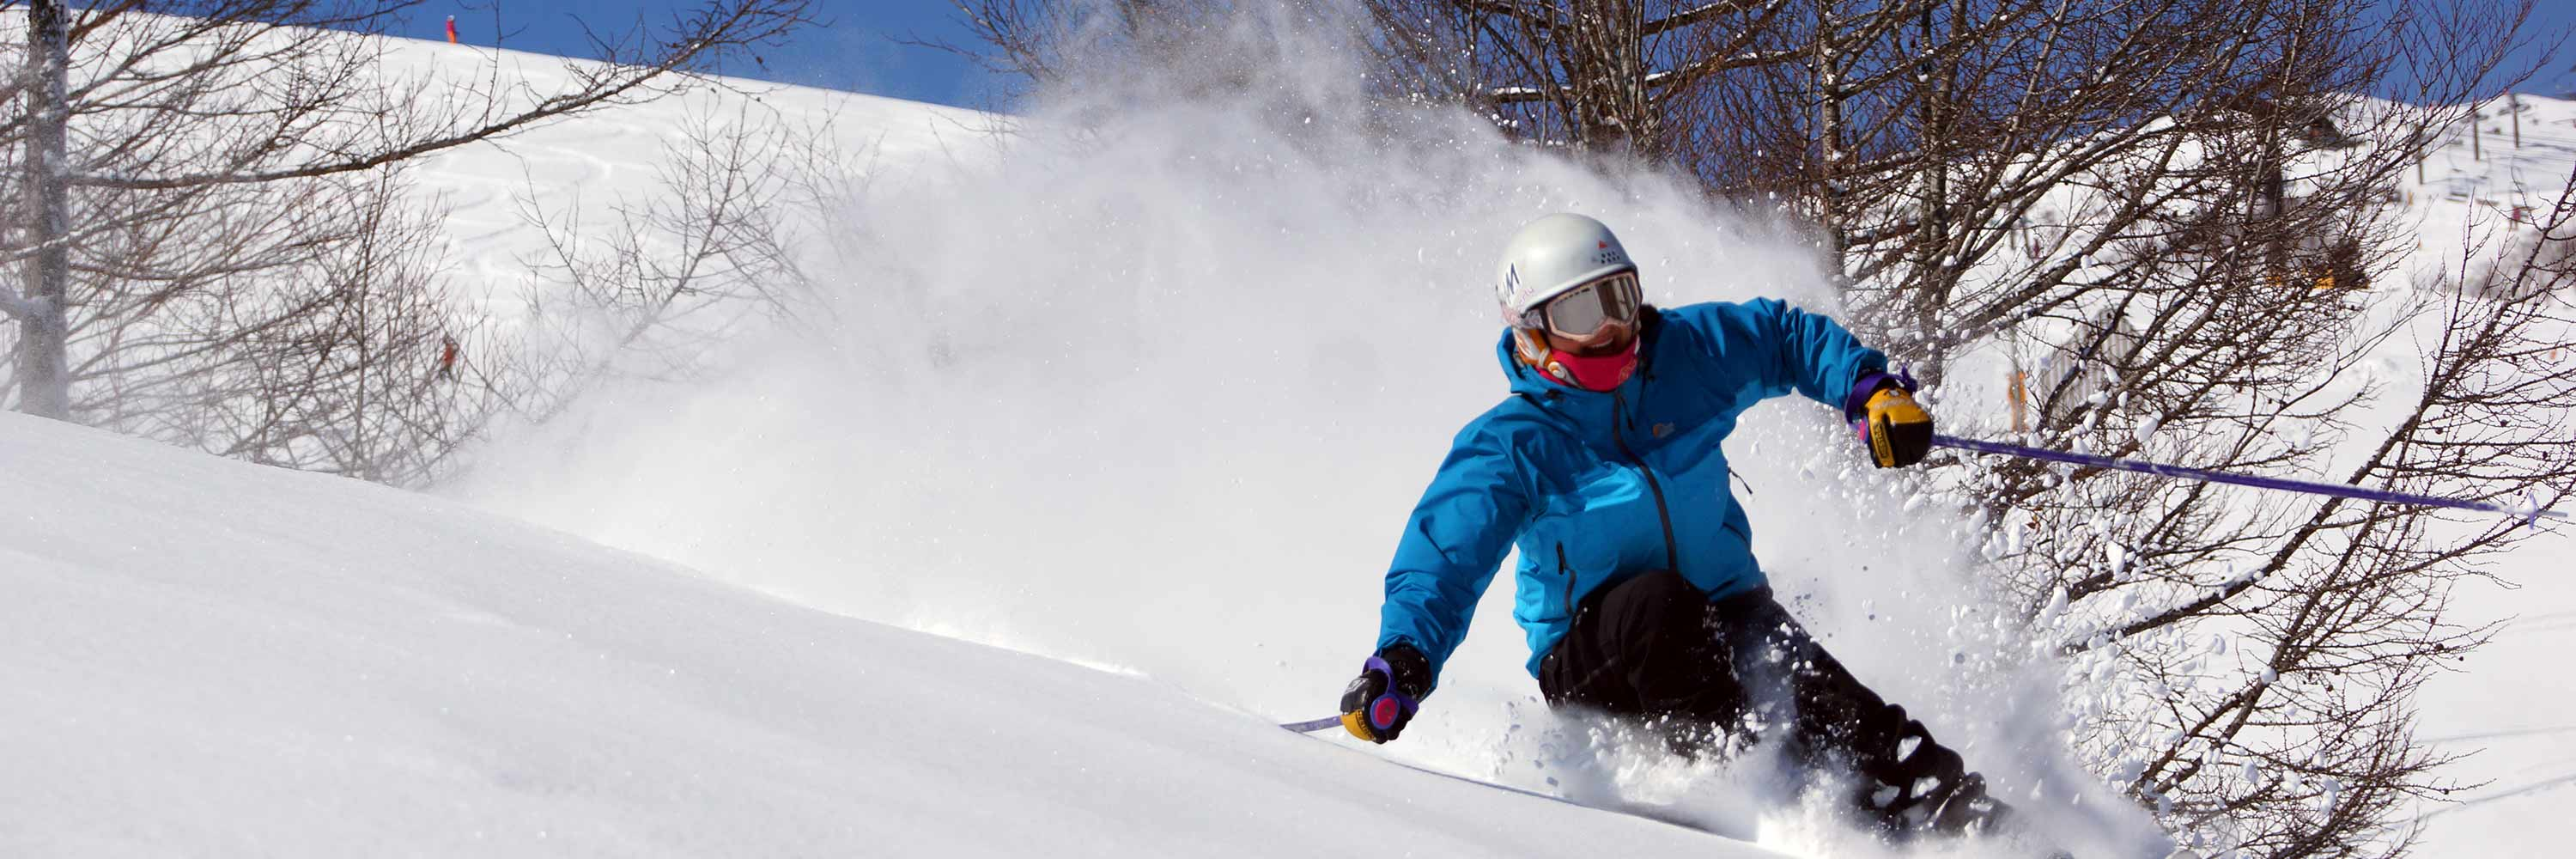 hakuba ski lessons and hakuba snowboard lessons